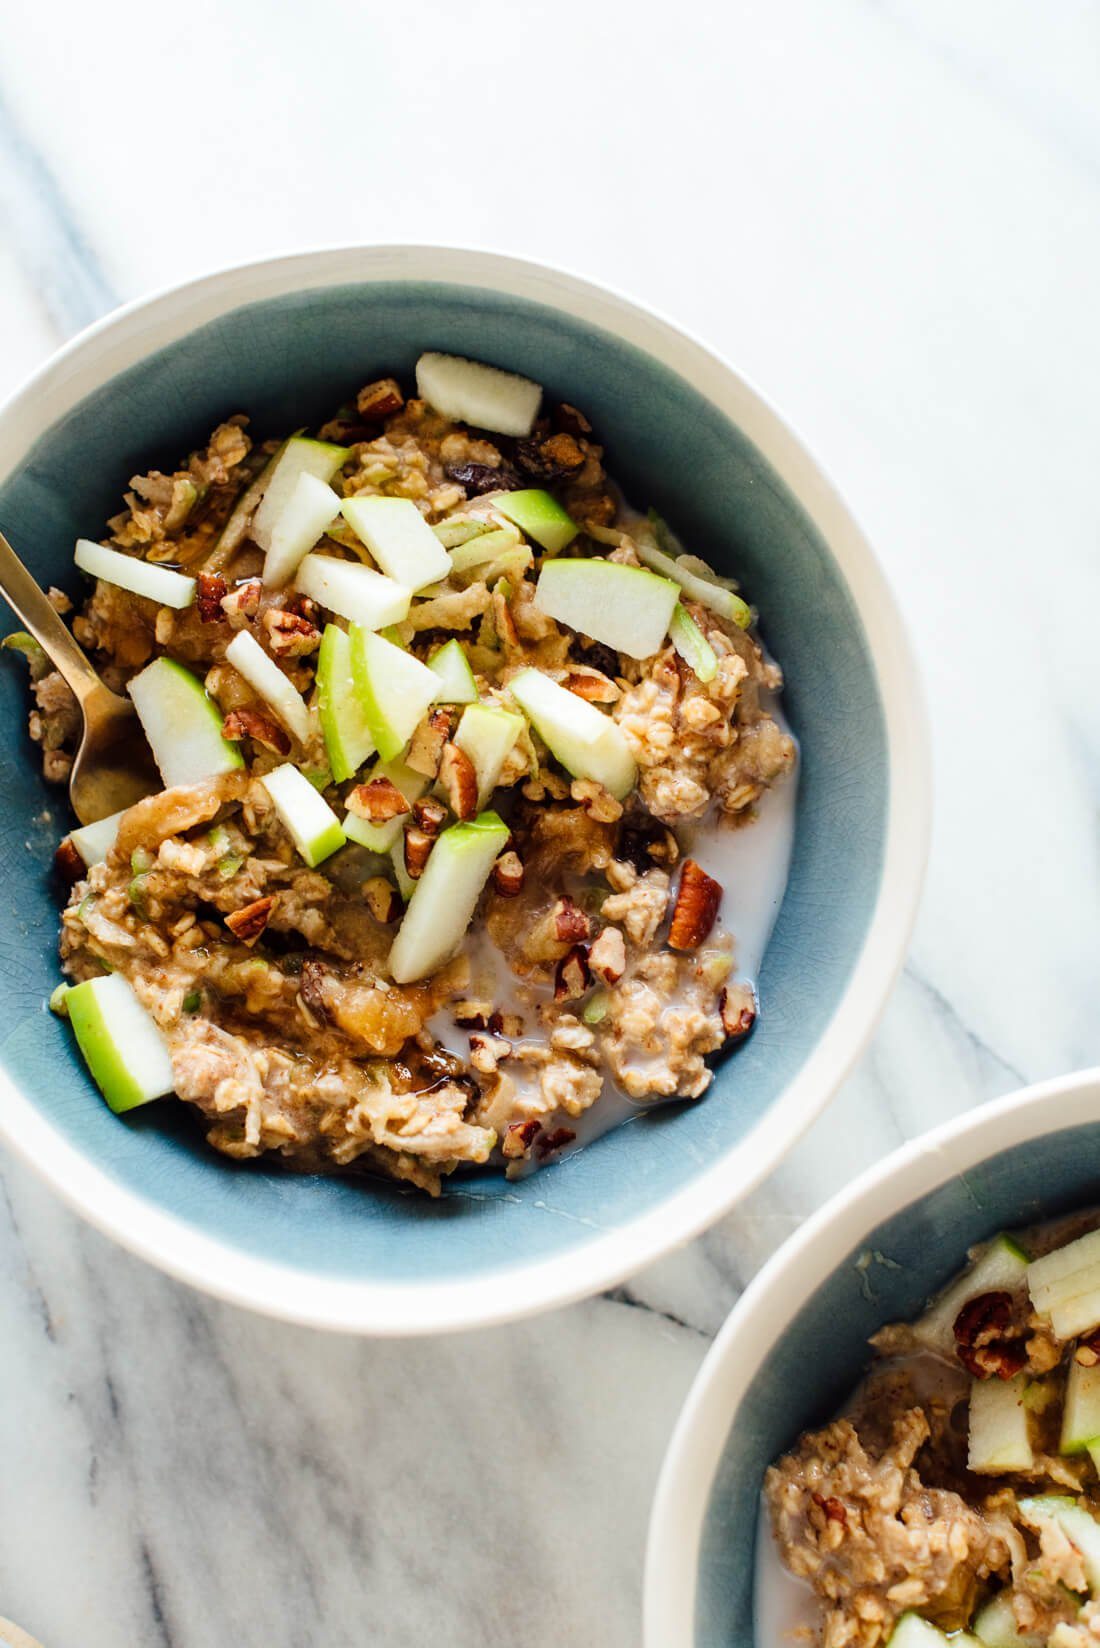 The best bircher muesli recipe, made with old-fashioned oats, homemade  applesauce,